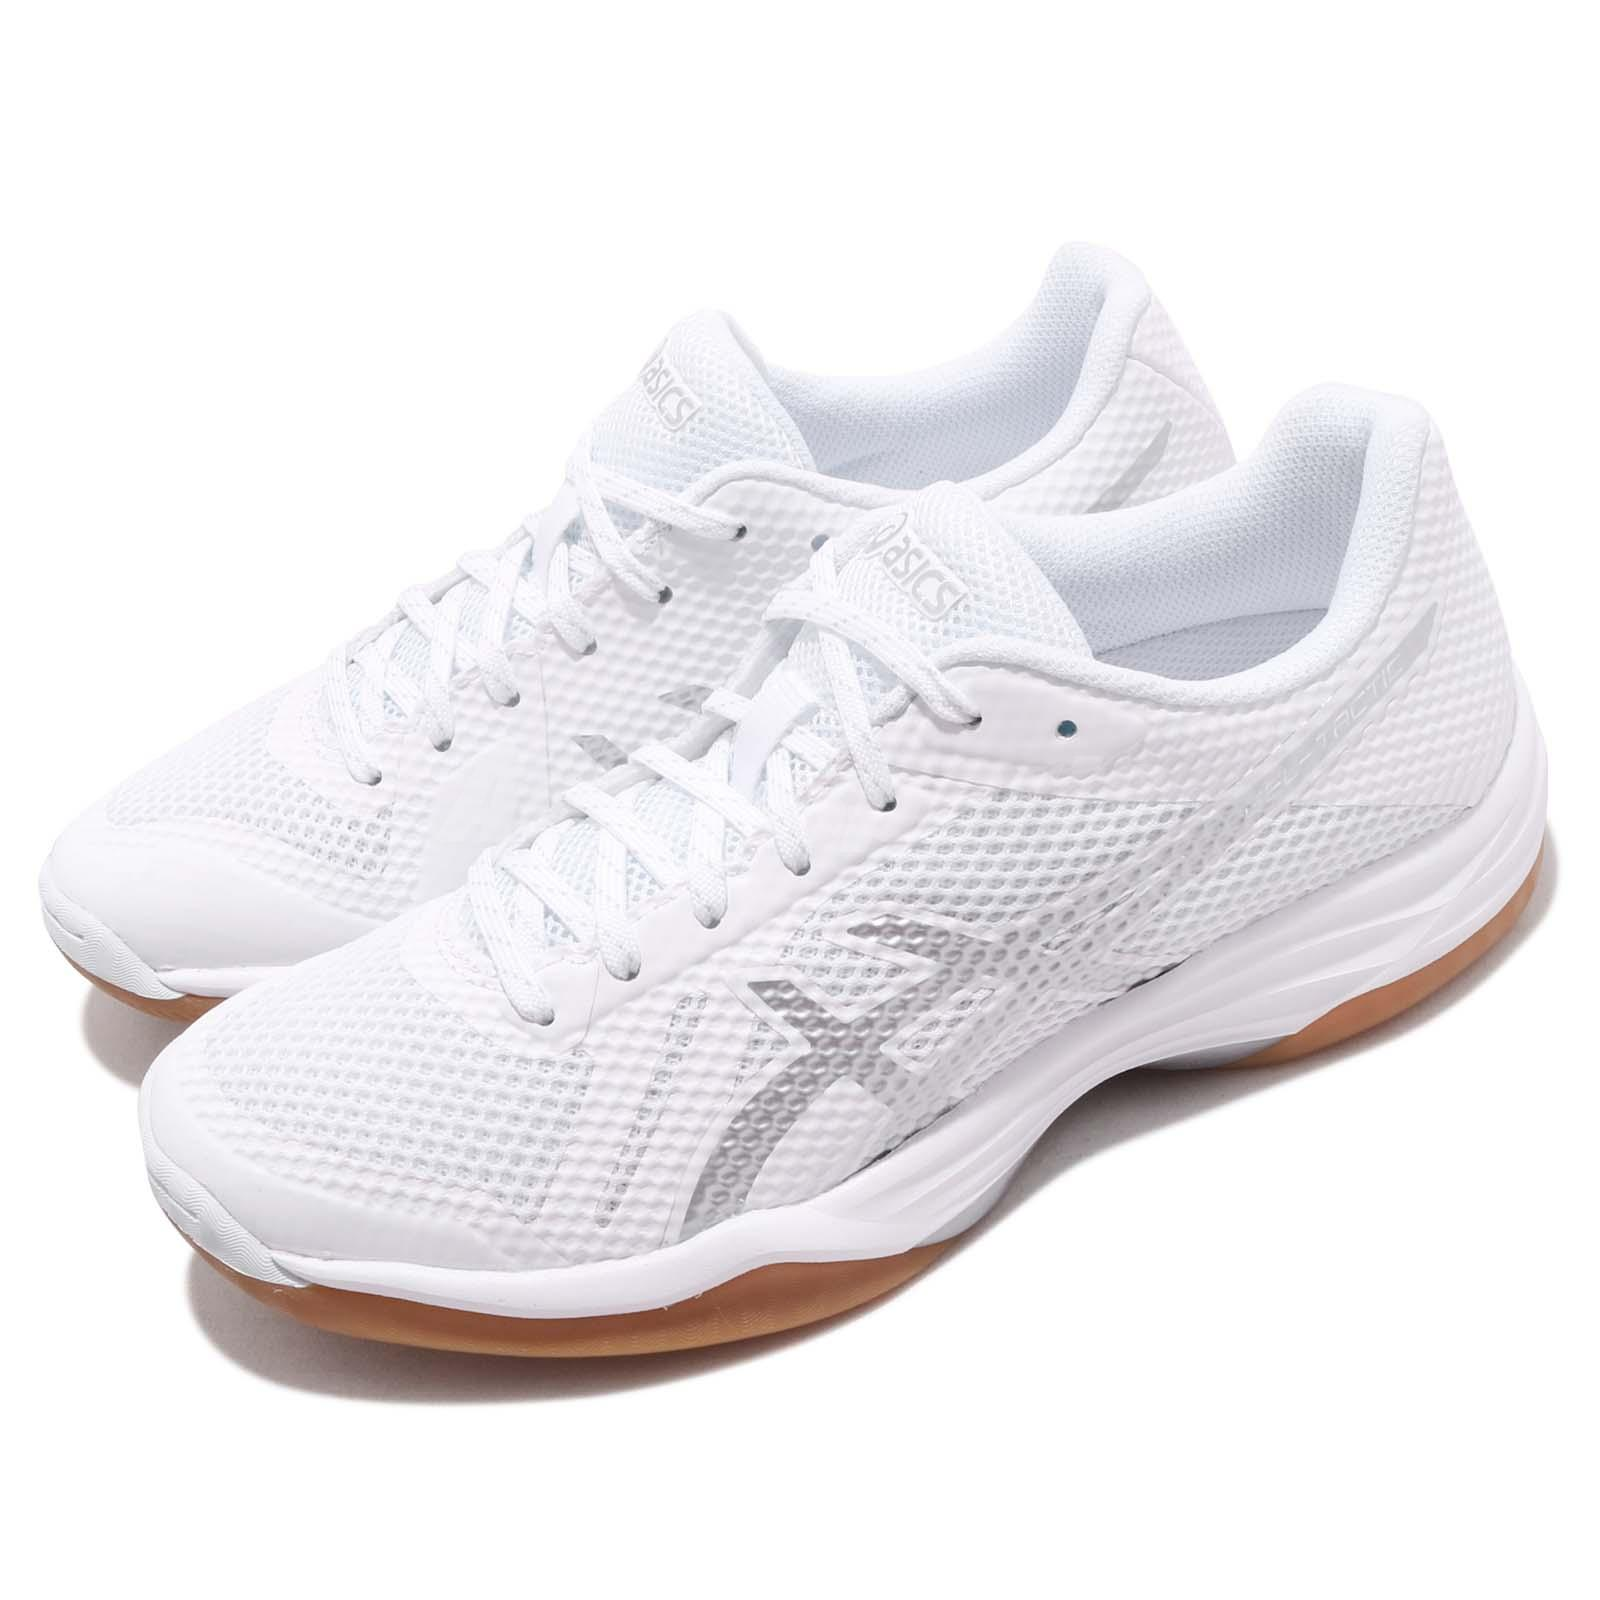 caf33a47a308 Details about Asics Gel Tactic White Silver Gum Women Volleyball Badminton  Shoes 1052A017-144